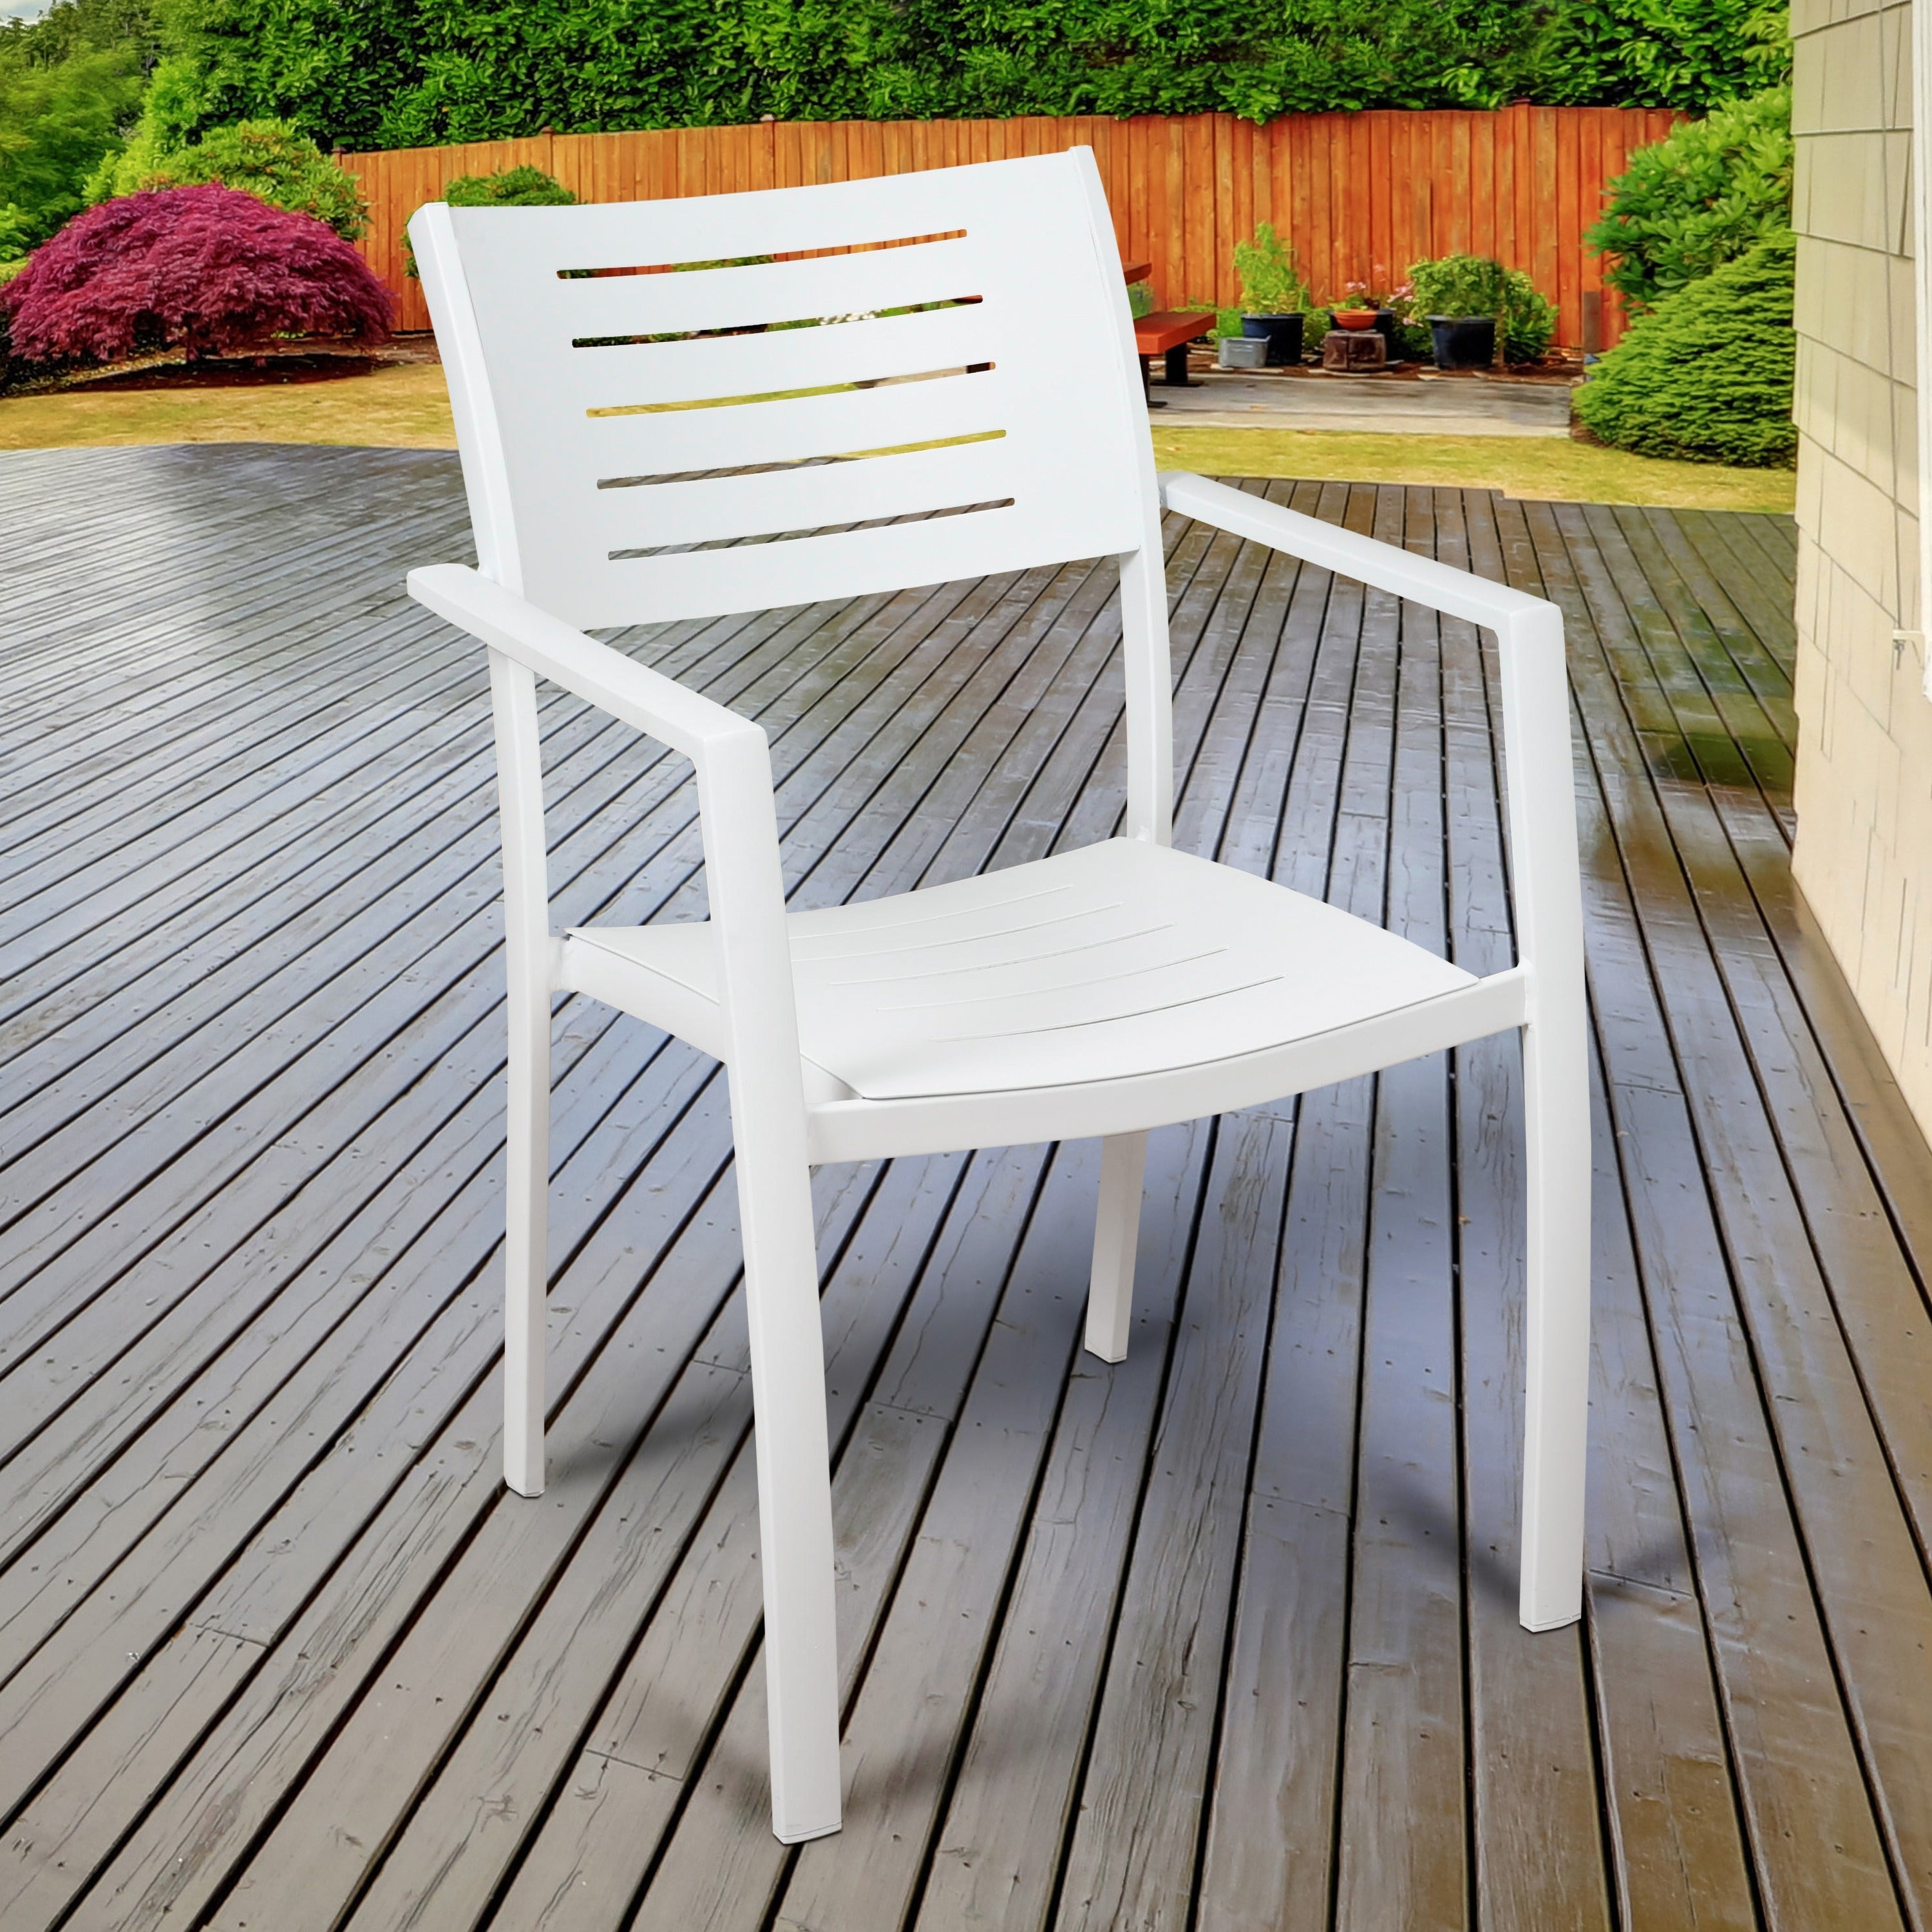 Havenside Home Mandalay 4 Piece Patio Dining Chairs, White Intended For Most Popular John 4 Piece Dining Sets (Photo 13 of 20)